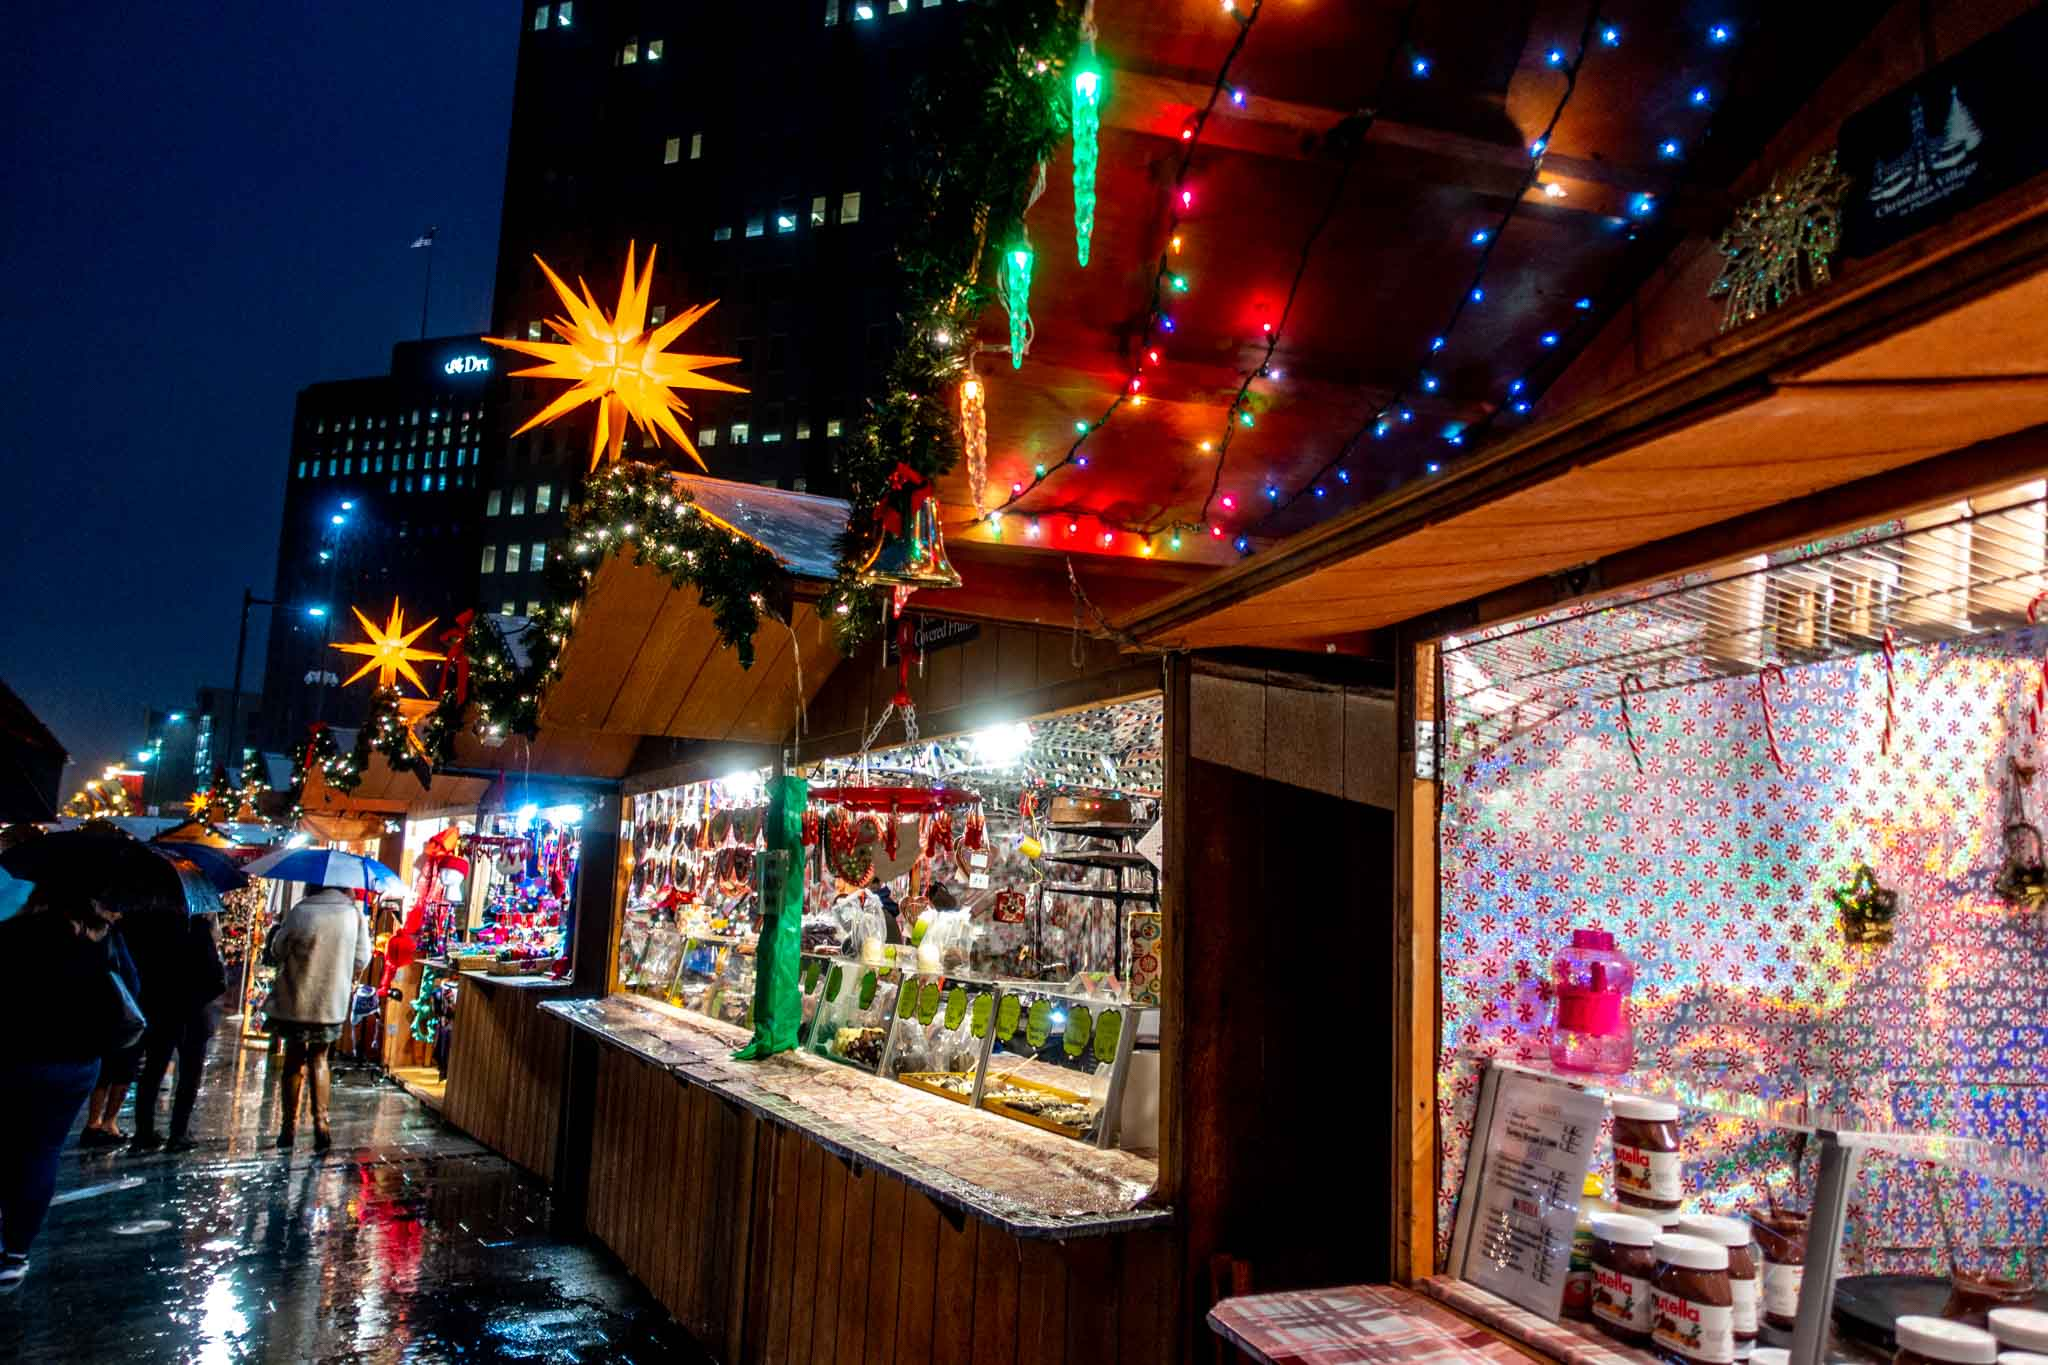 Wooden vendor huts decorated with lights